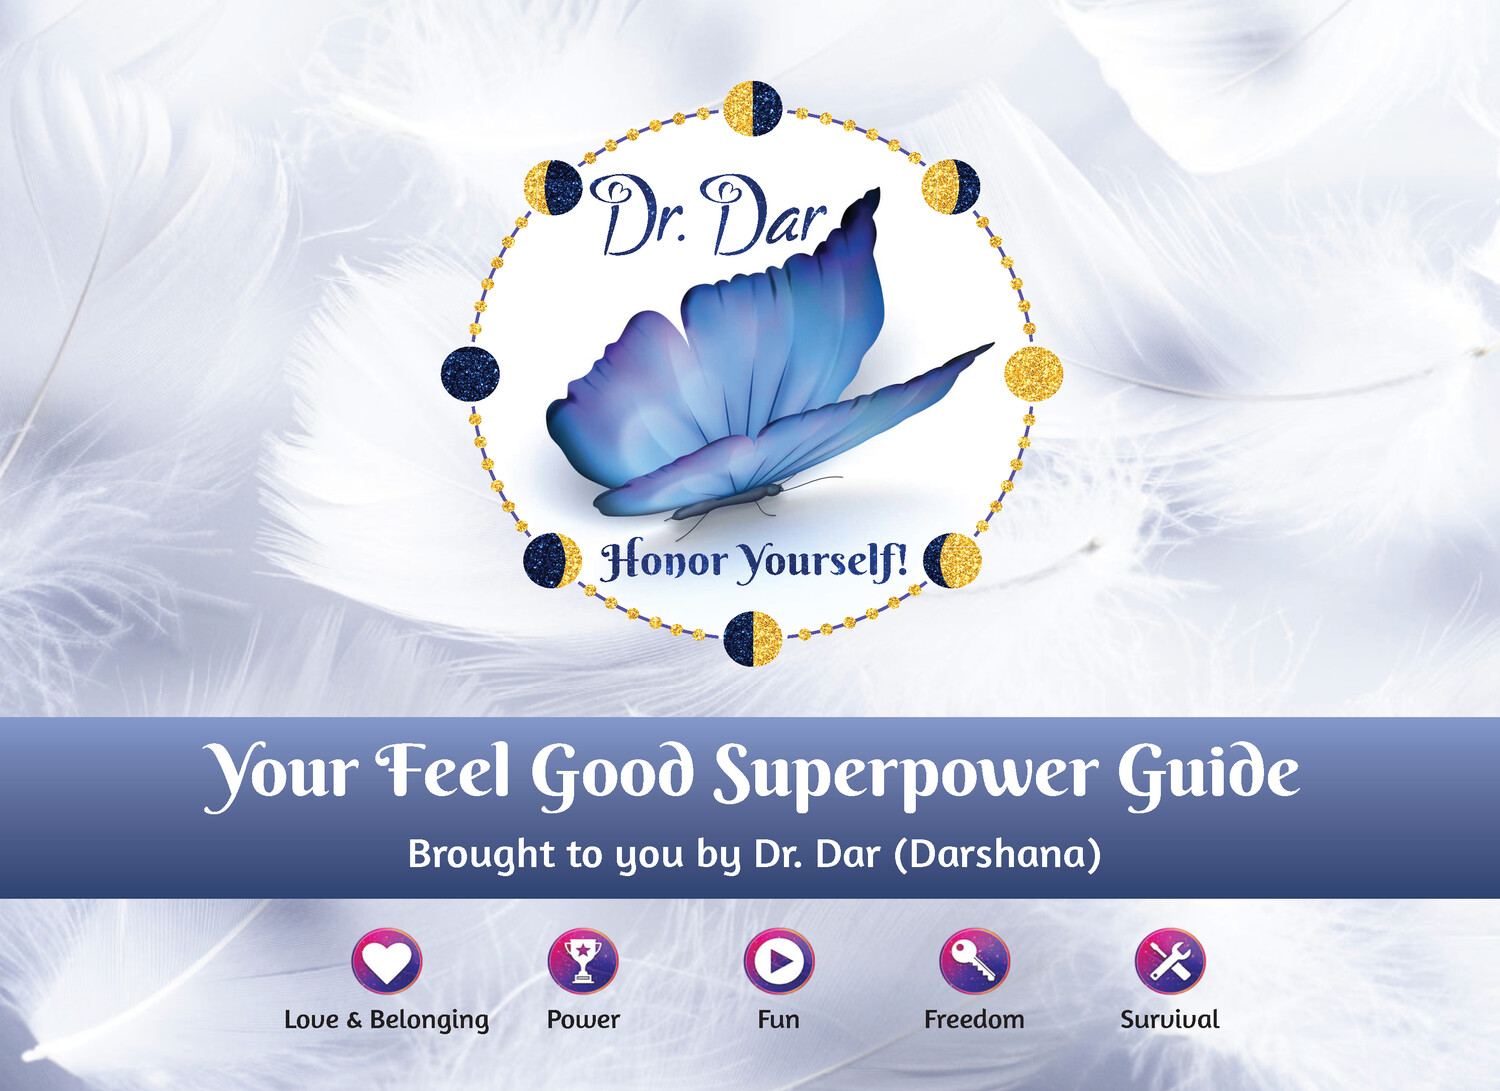 The Feel Good Superpower Relationship Guide